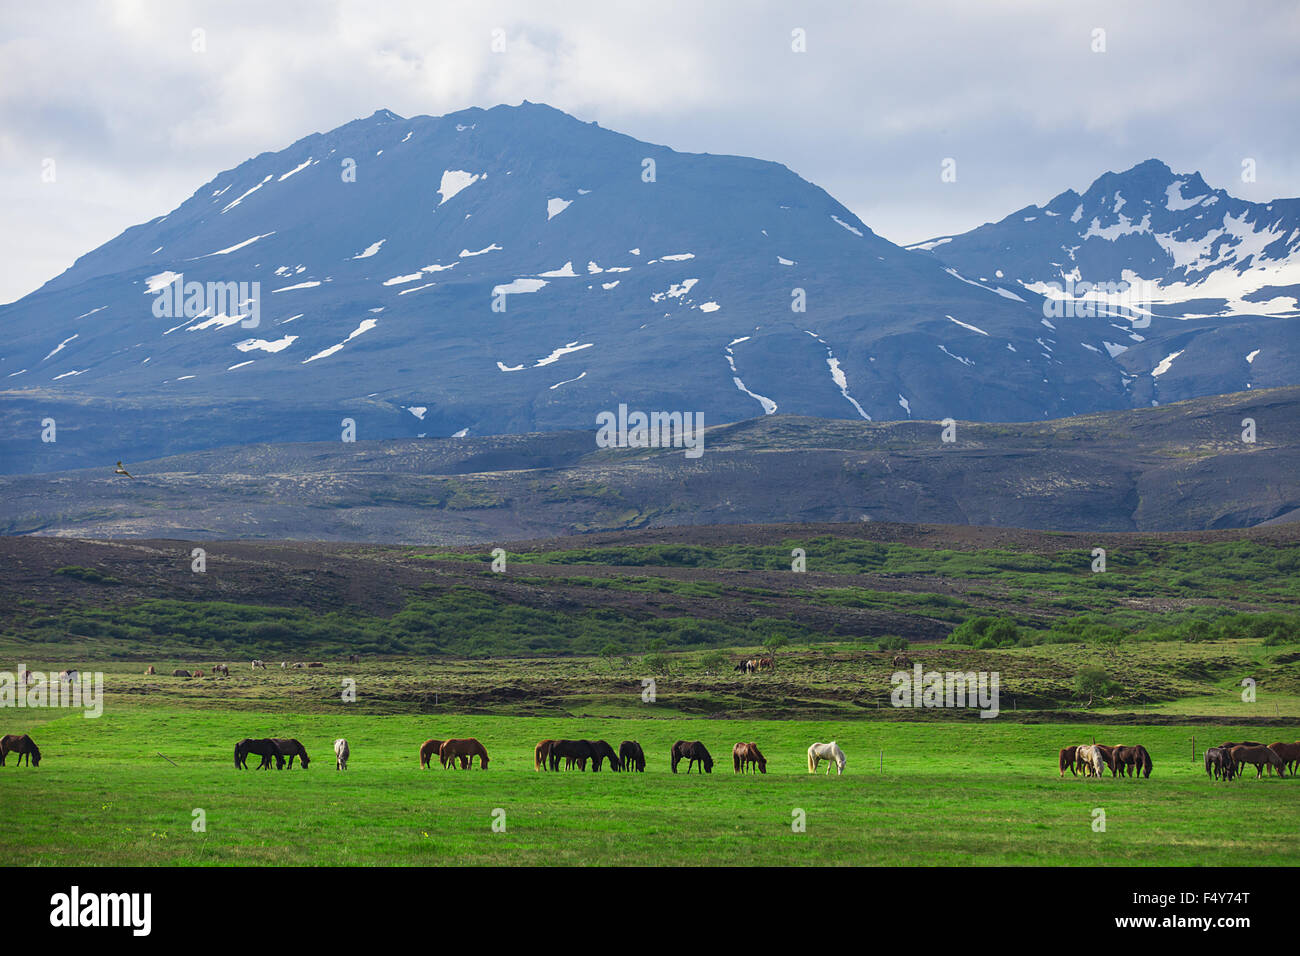 Icelandic Horses in a field - Stock Image